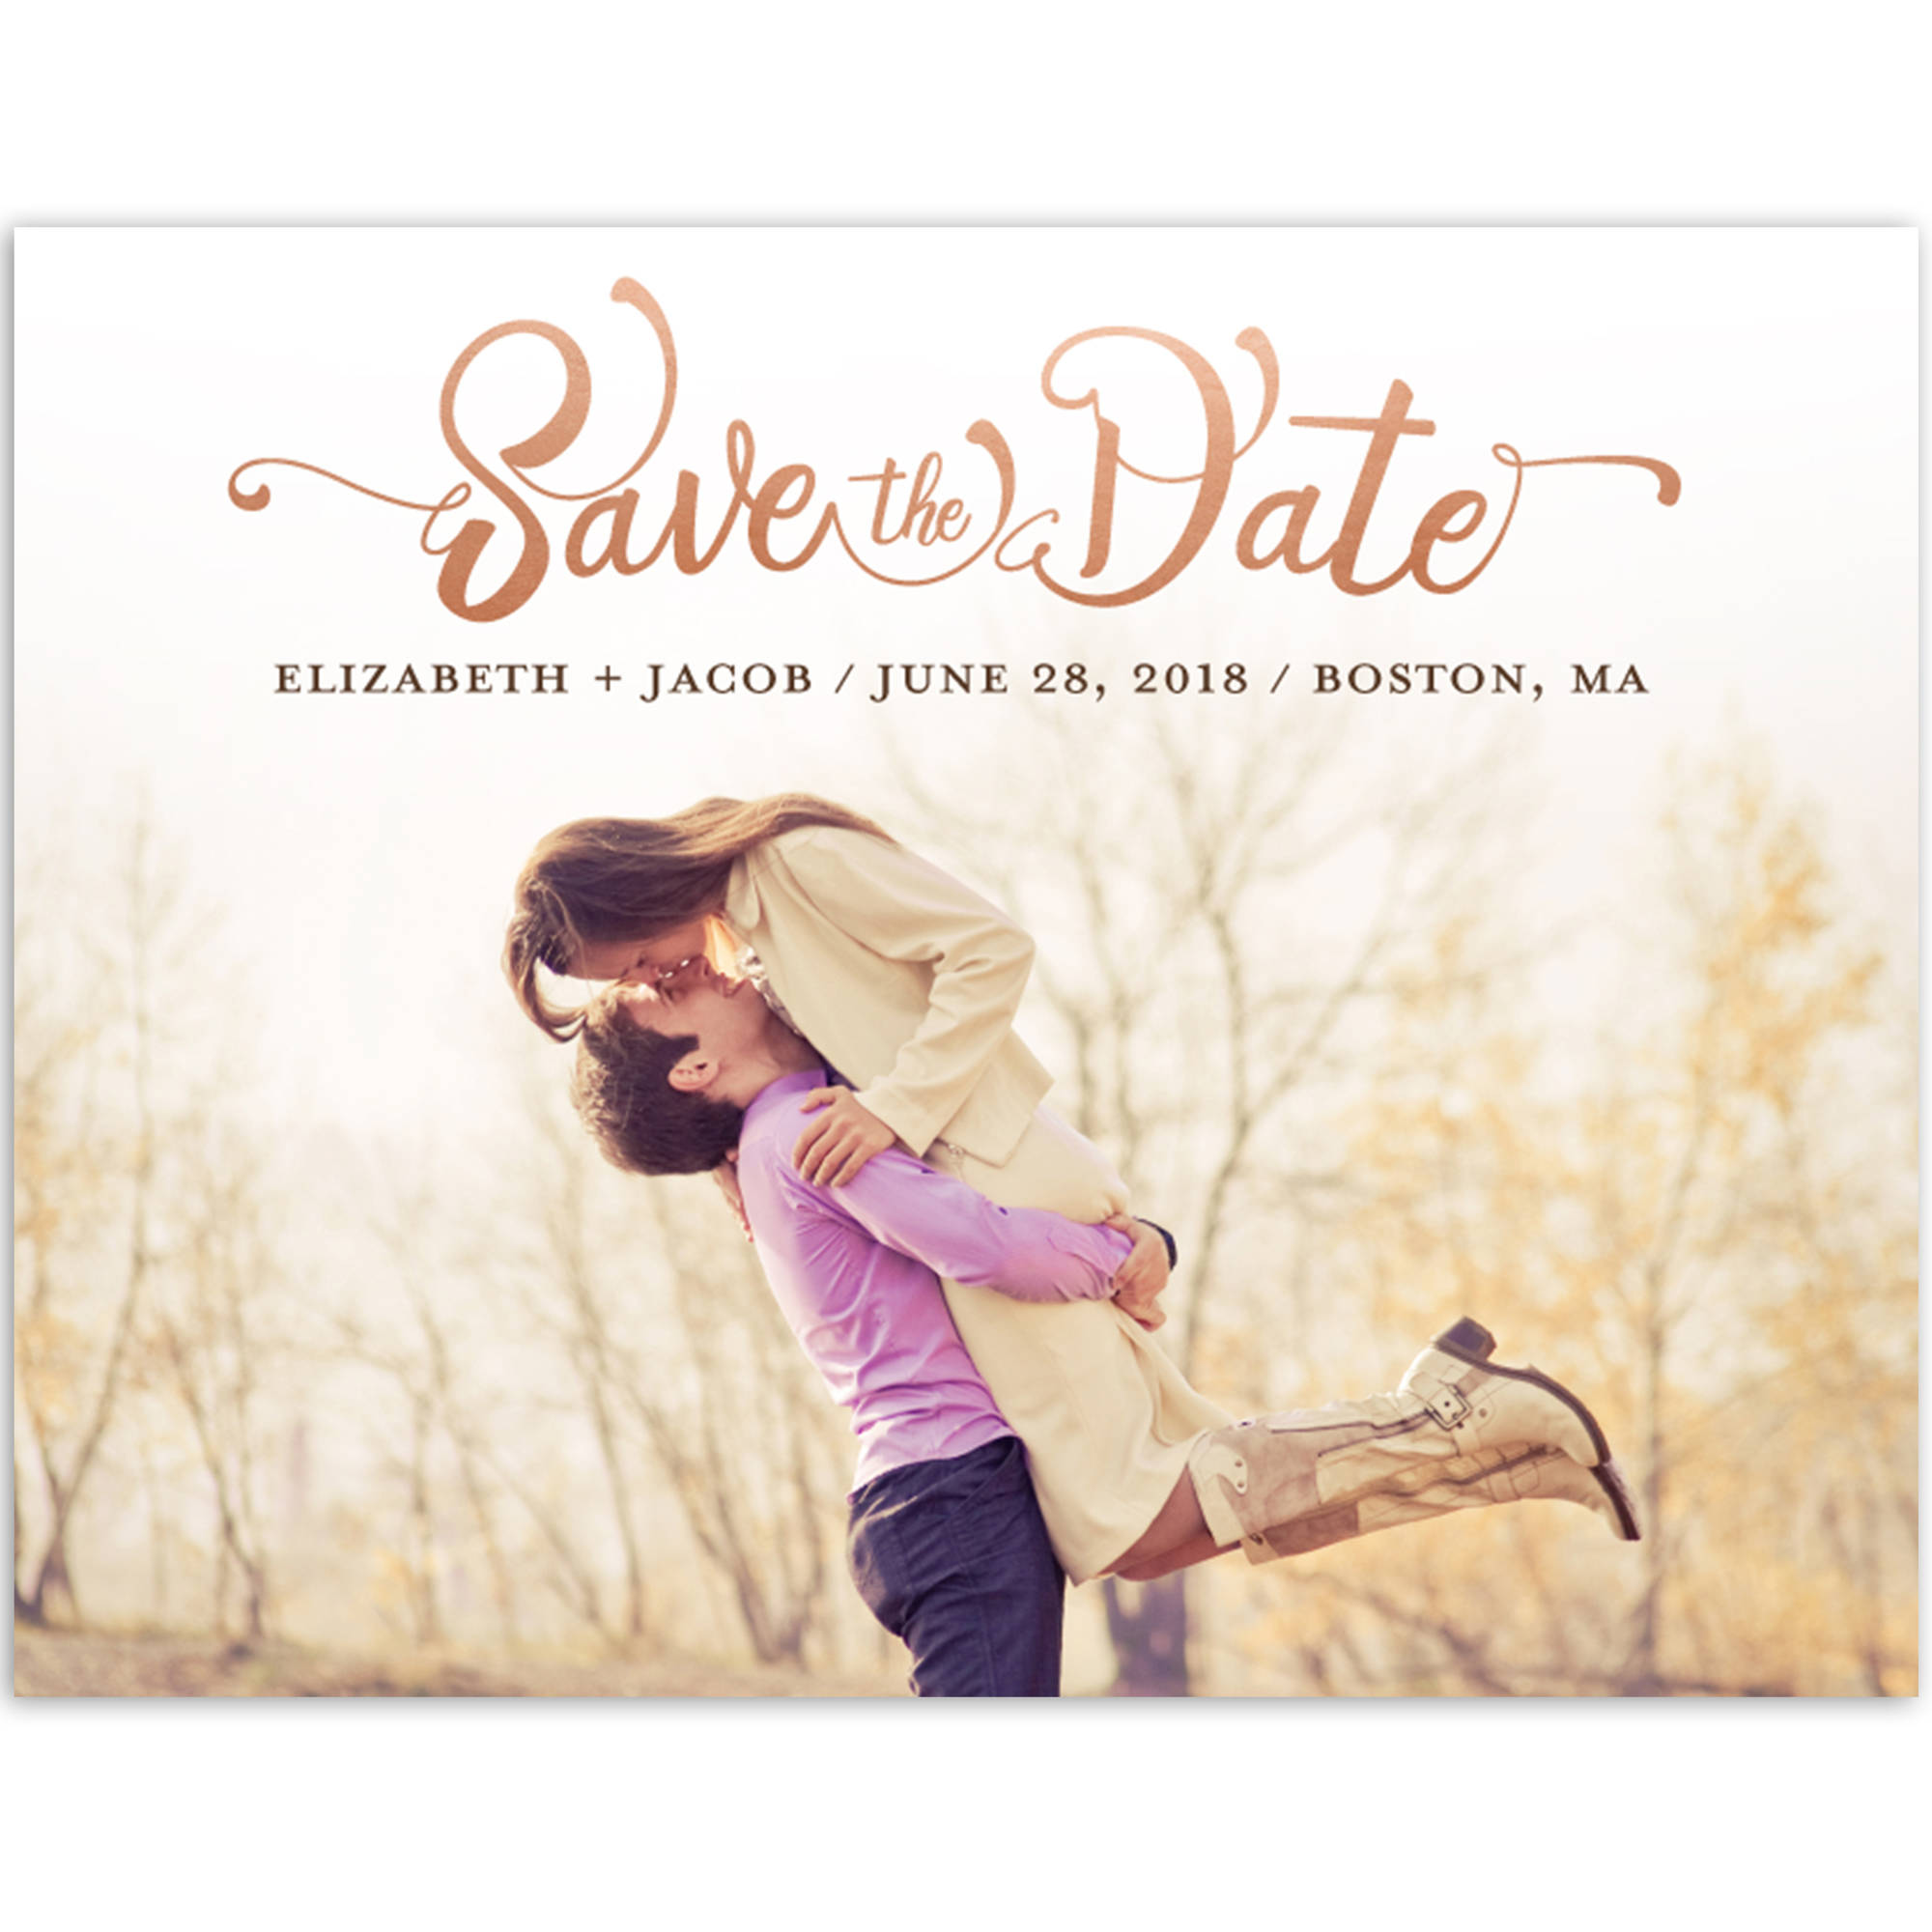 Whimsical Type Wedding Save the Date Postcard